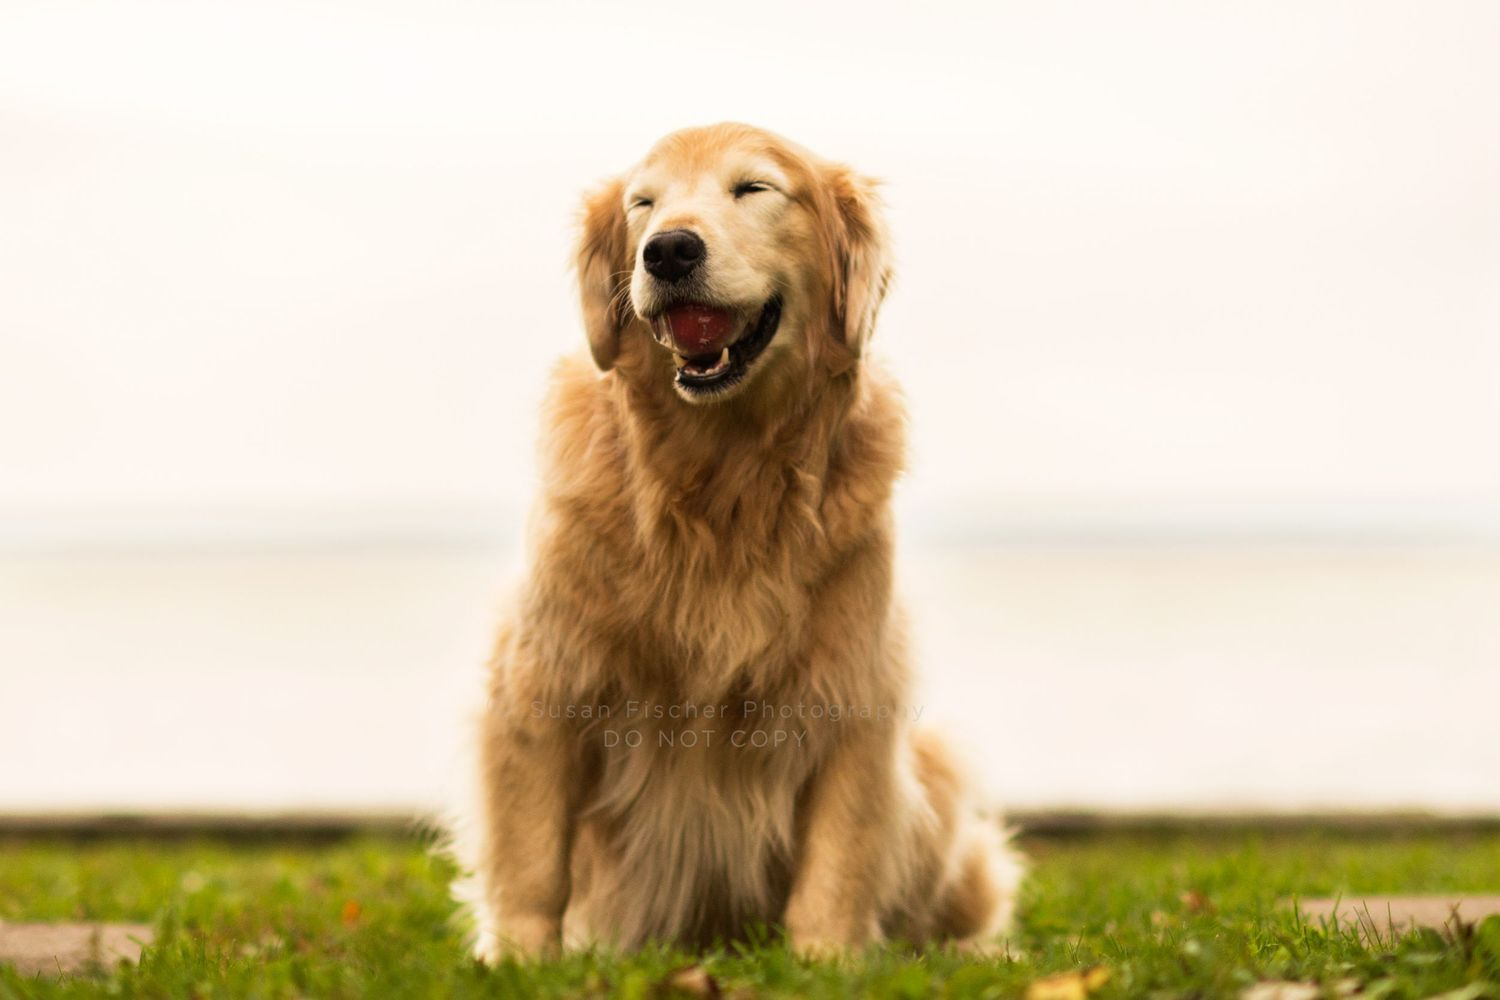 Senior Golden Retriever Dog smiling with ball in mouth